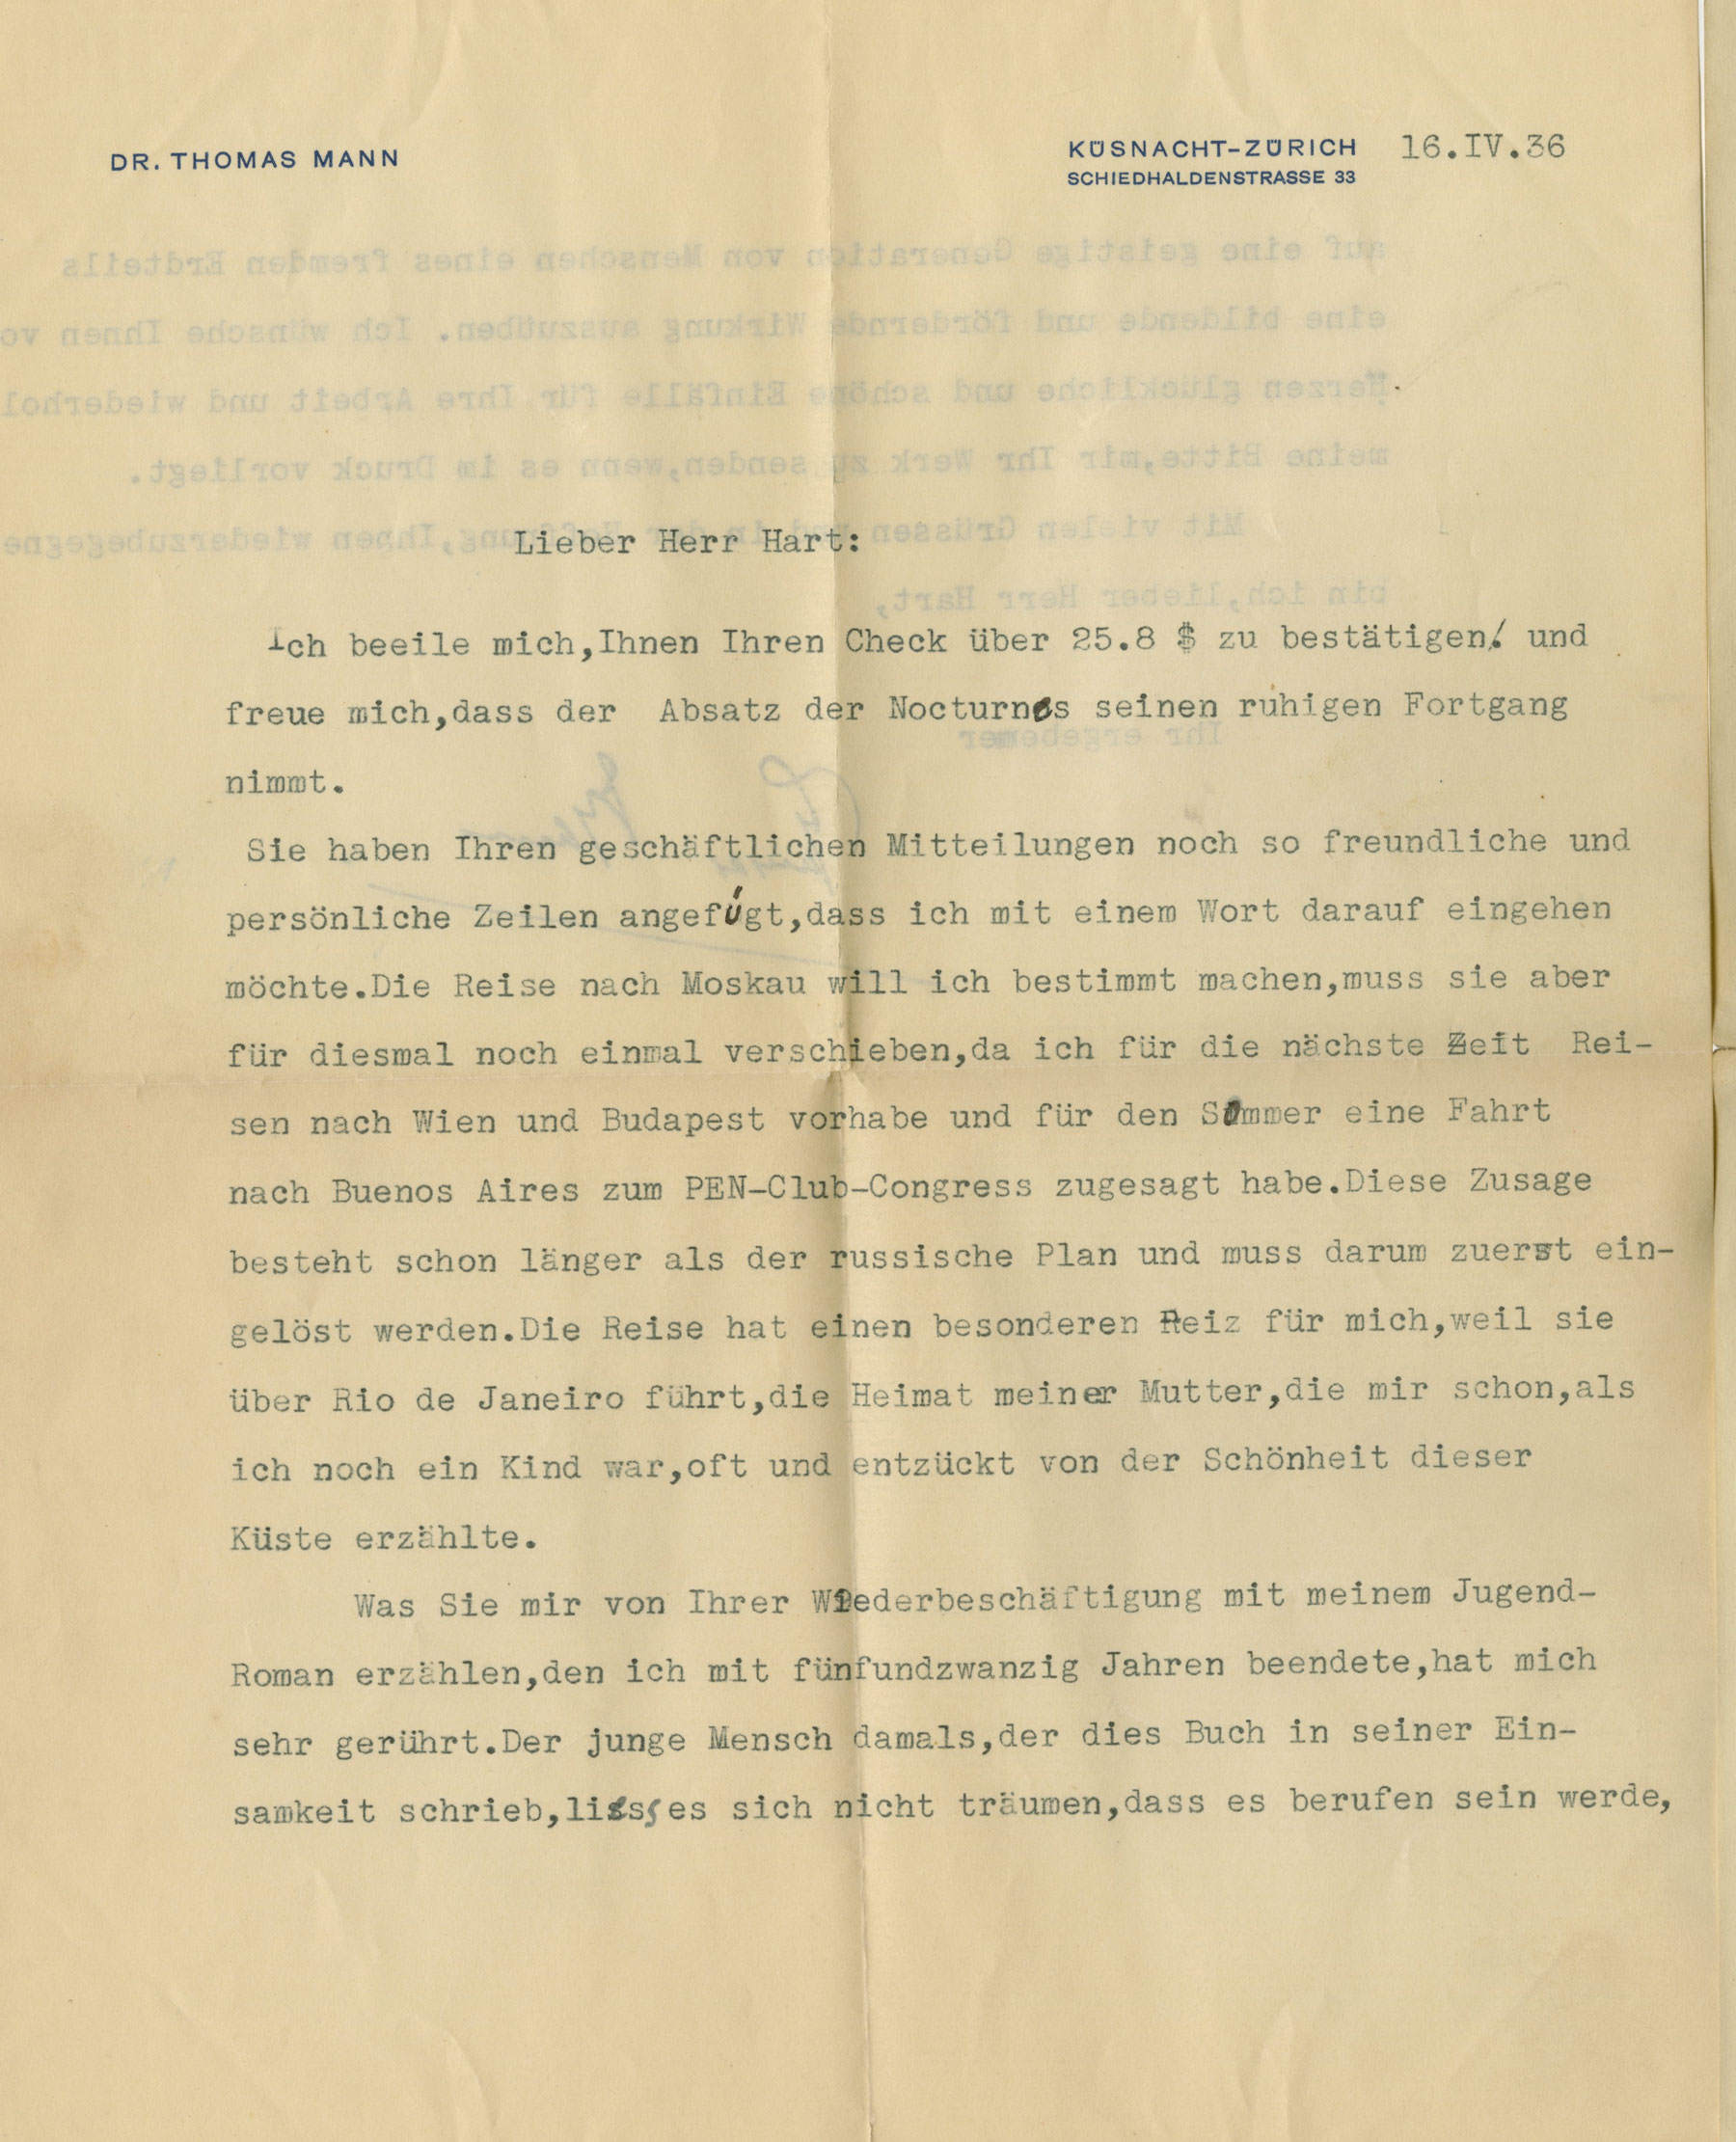 Thomas Mann Letter Signed Reflects on the Impact of his Work